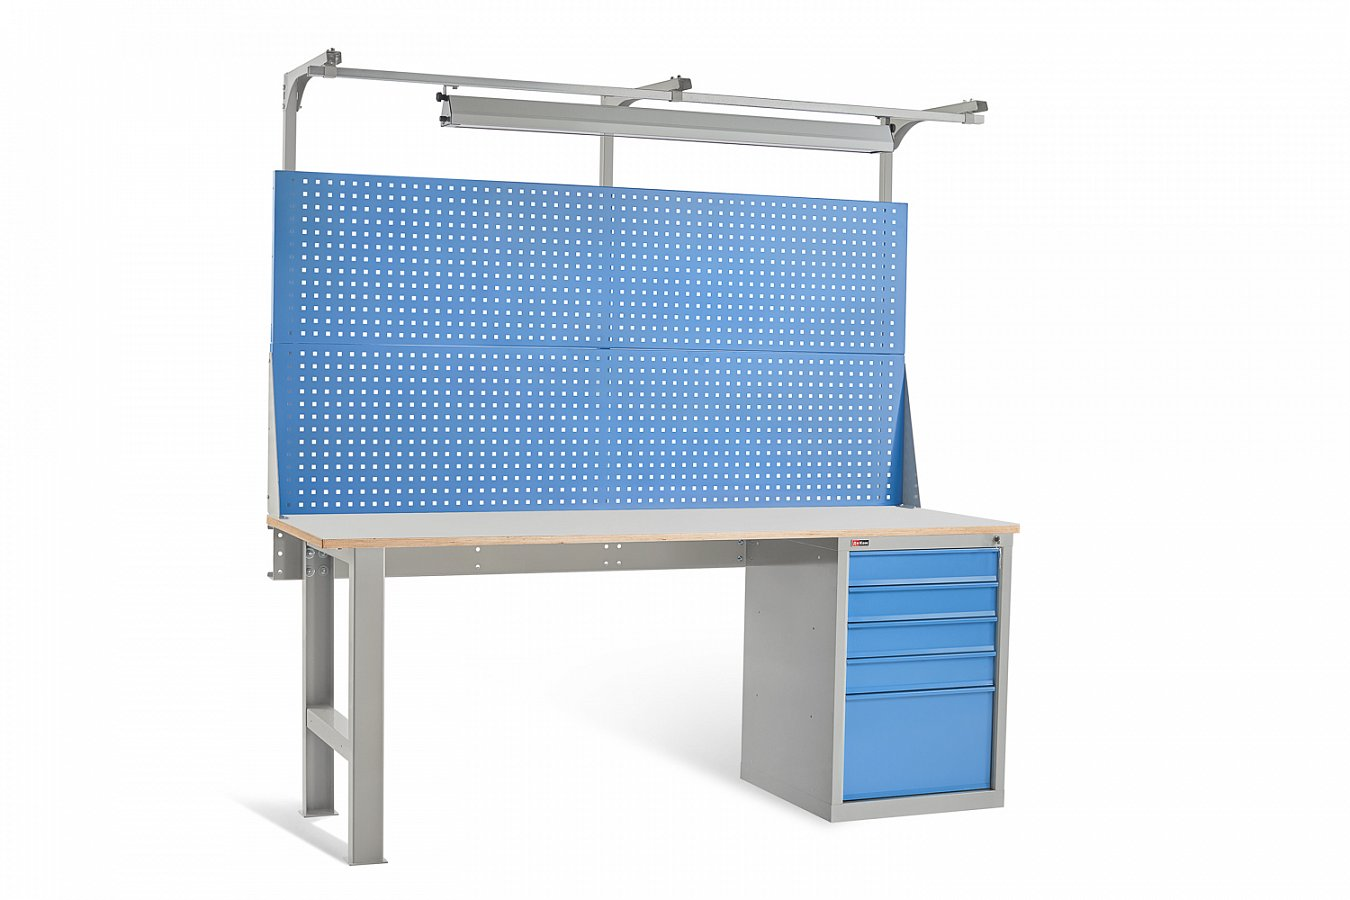 DiKom VL-200-04 Workbench (5)